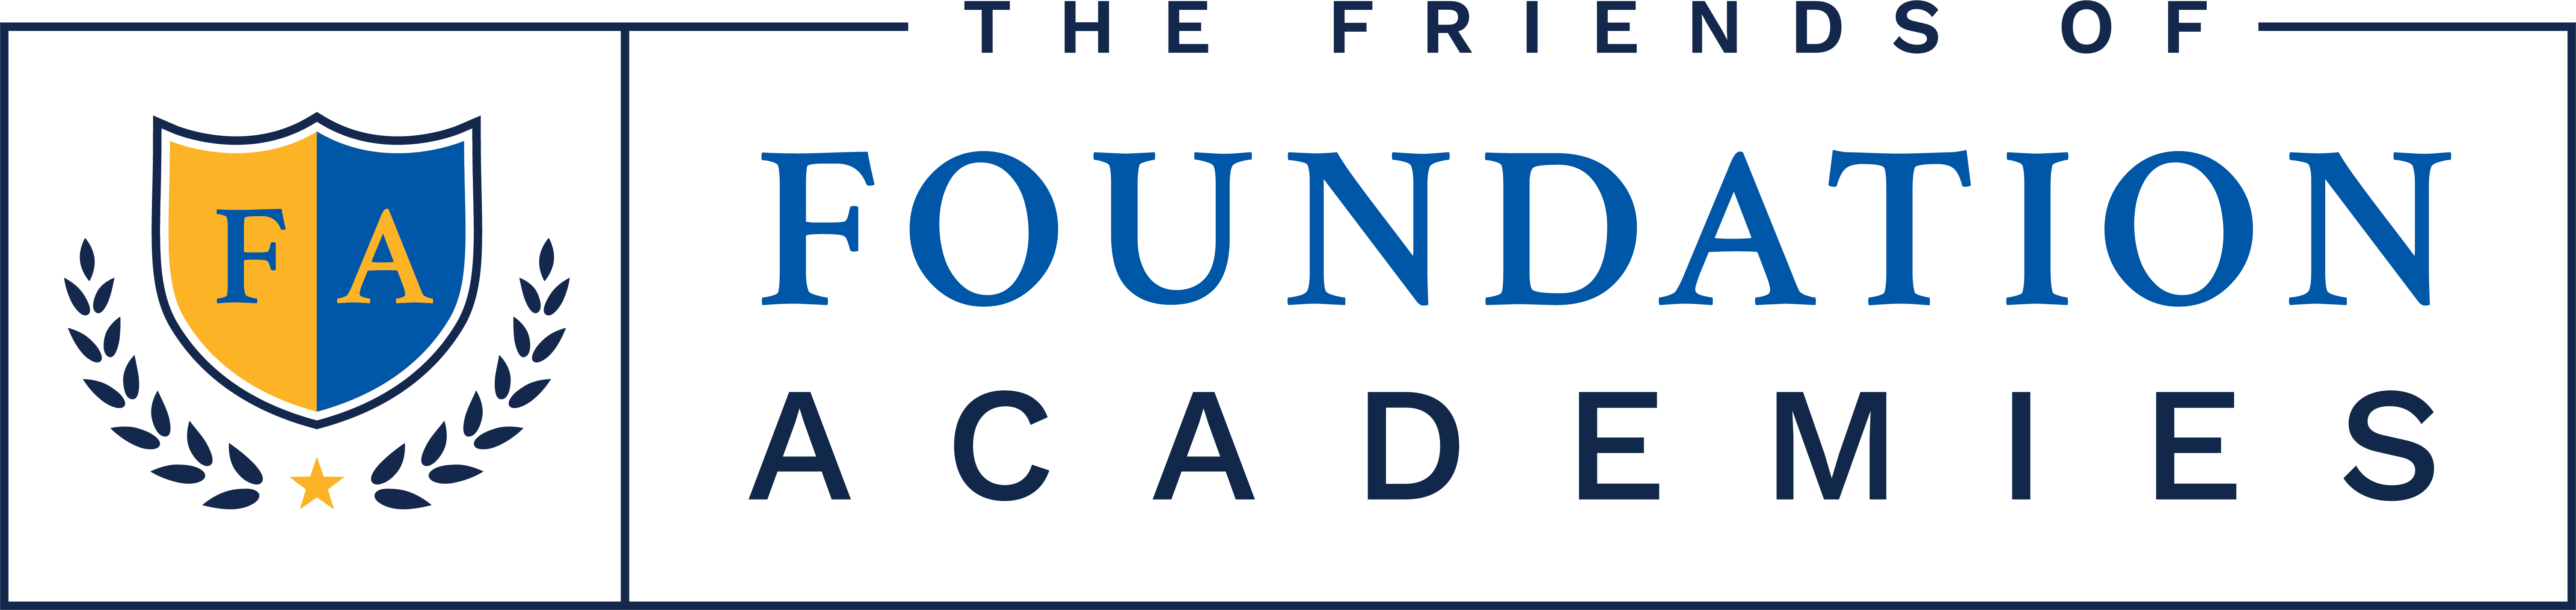 The Friends of Foundation Academies